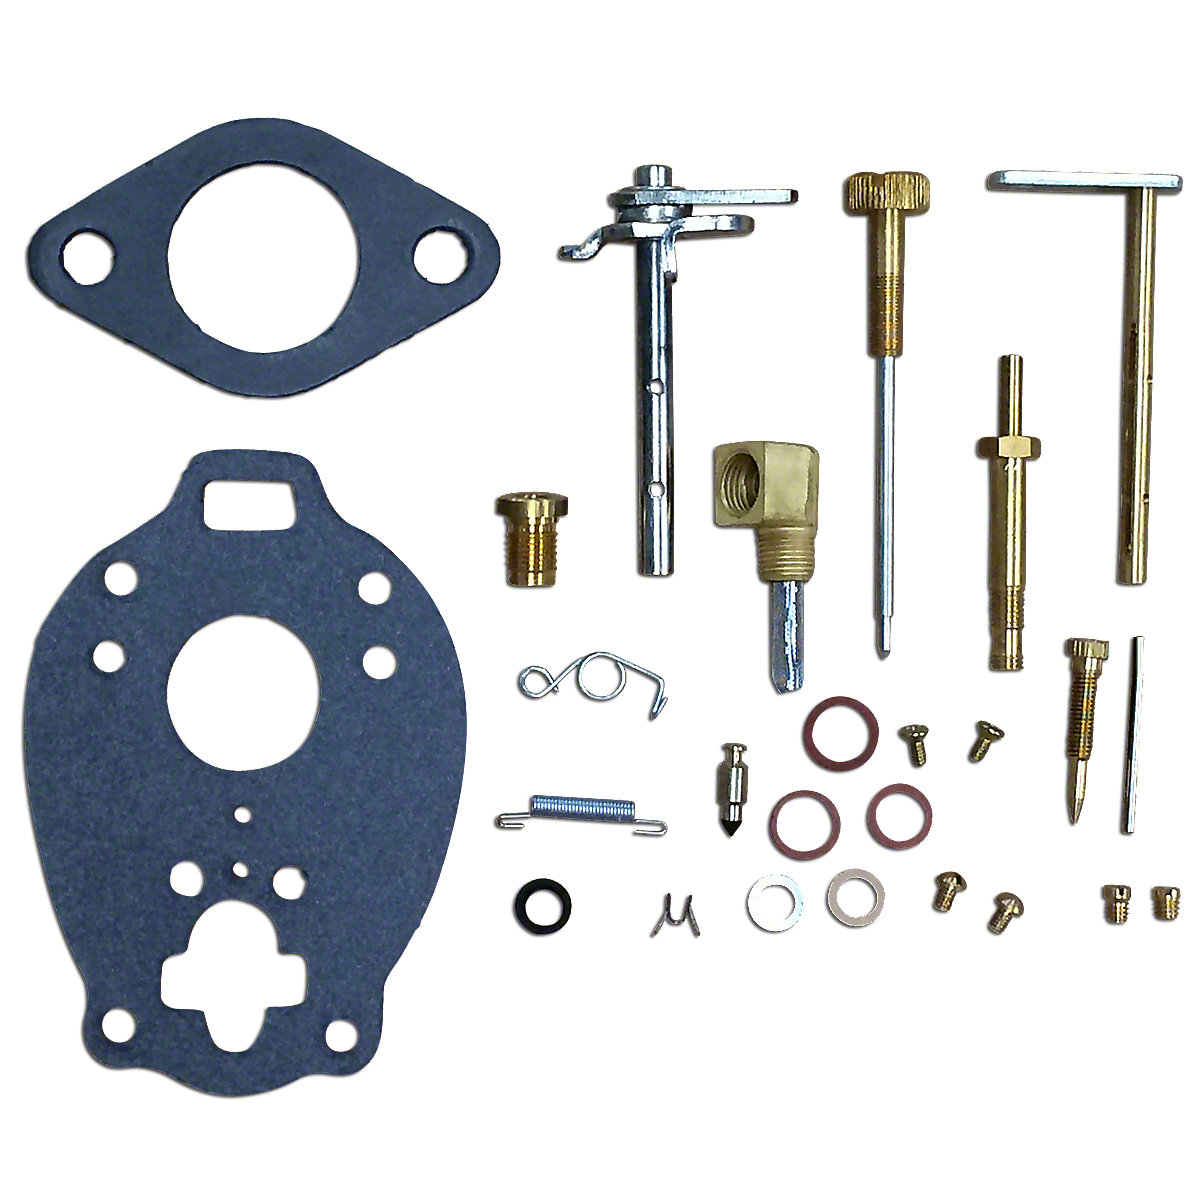 Marvel Schebler Complete Carburetor Kit For Massey Ferguson: TE20, TO20.